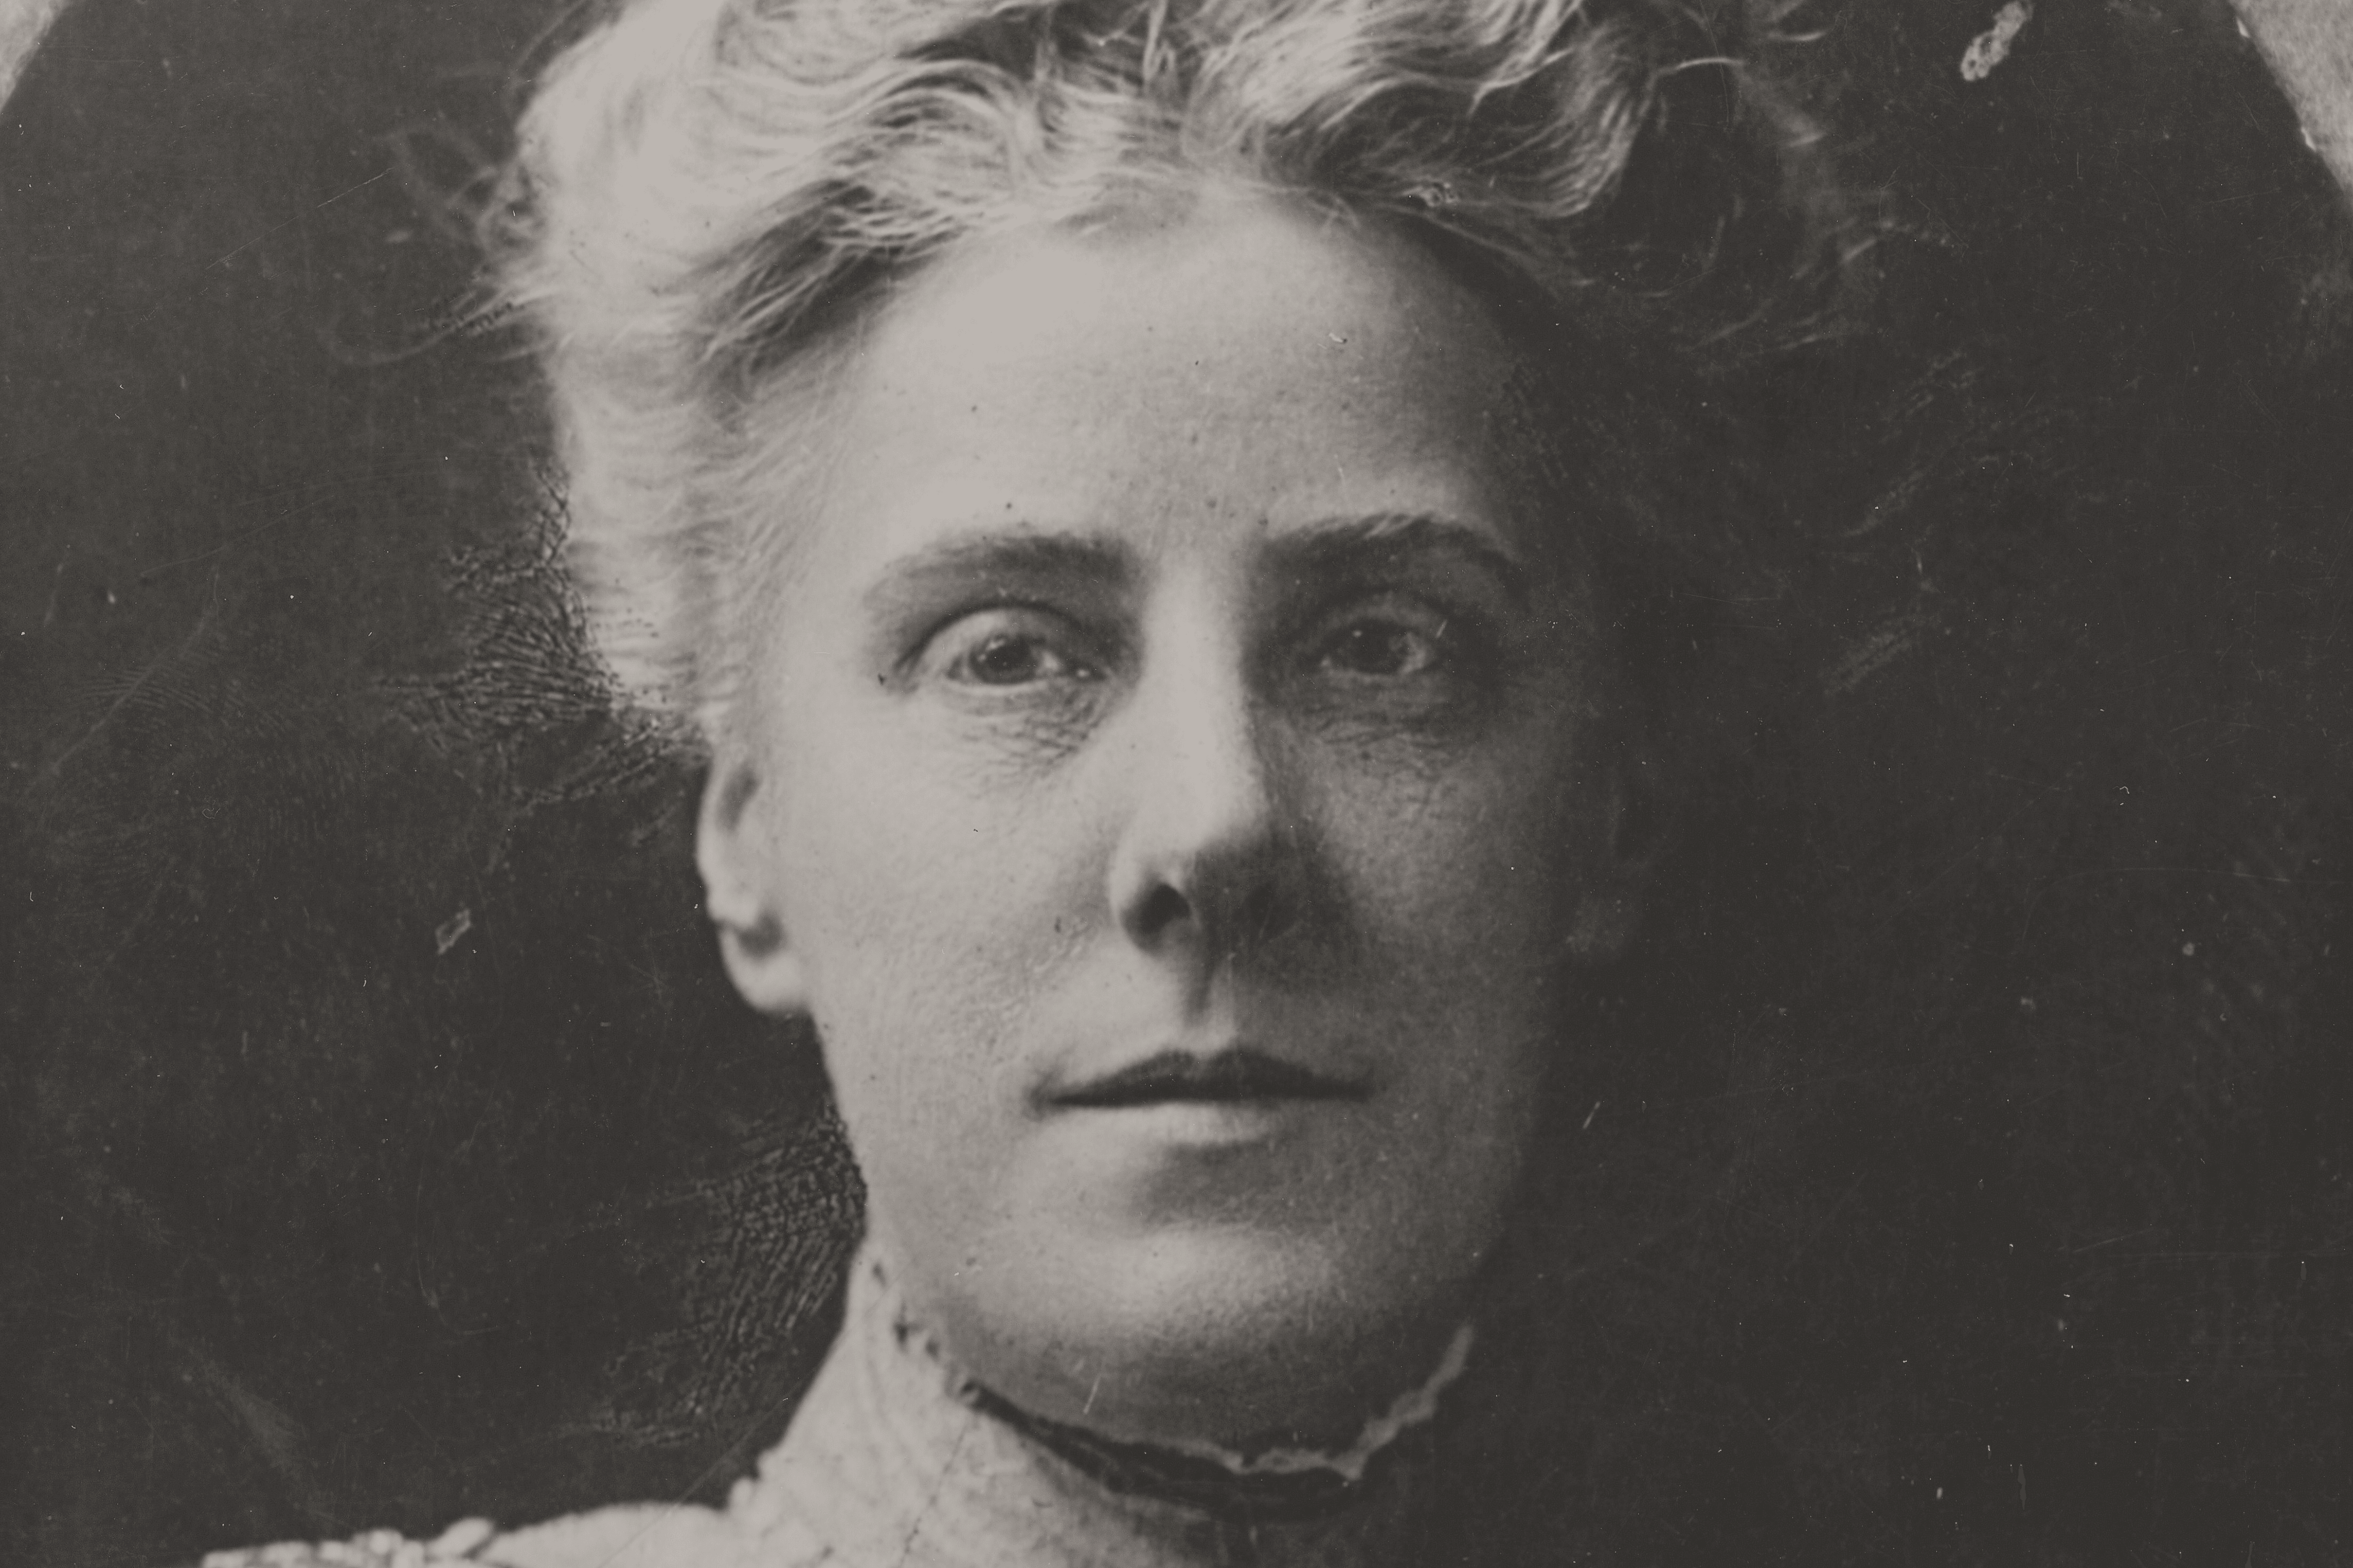 Anna Jarvis, about 1900. FPG / Archive Photos / Getty Images